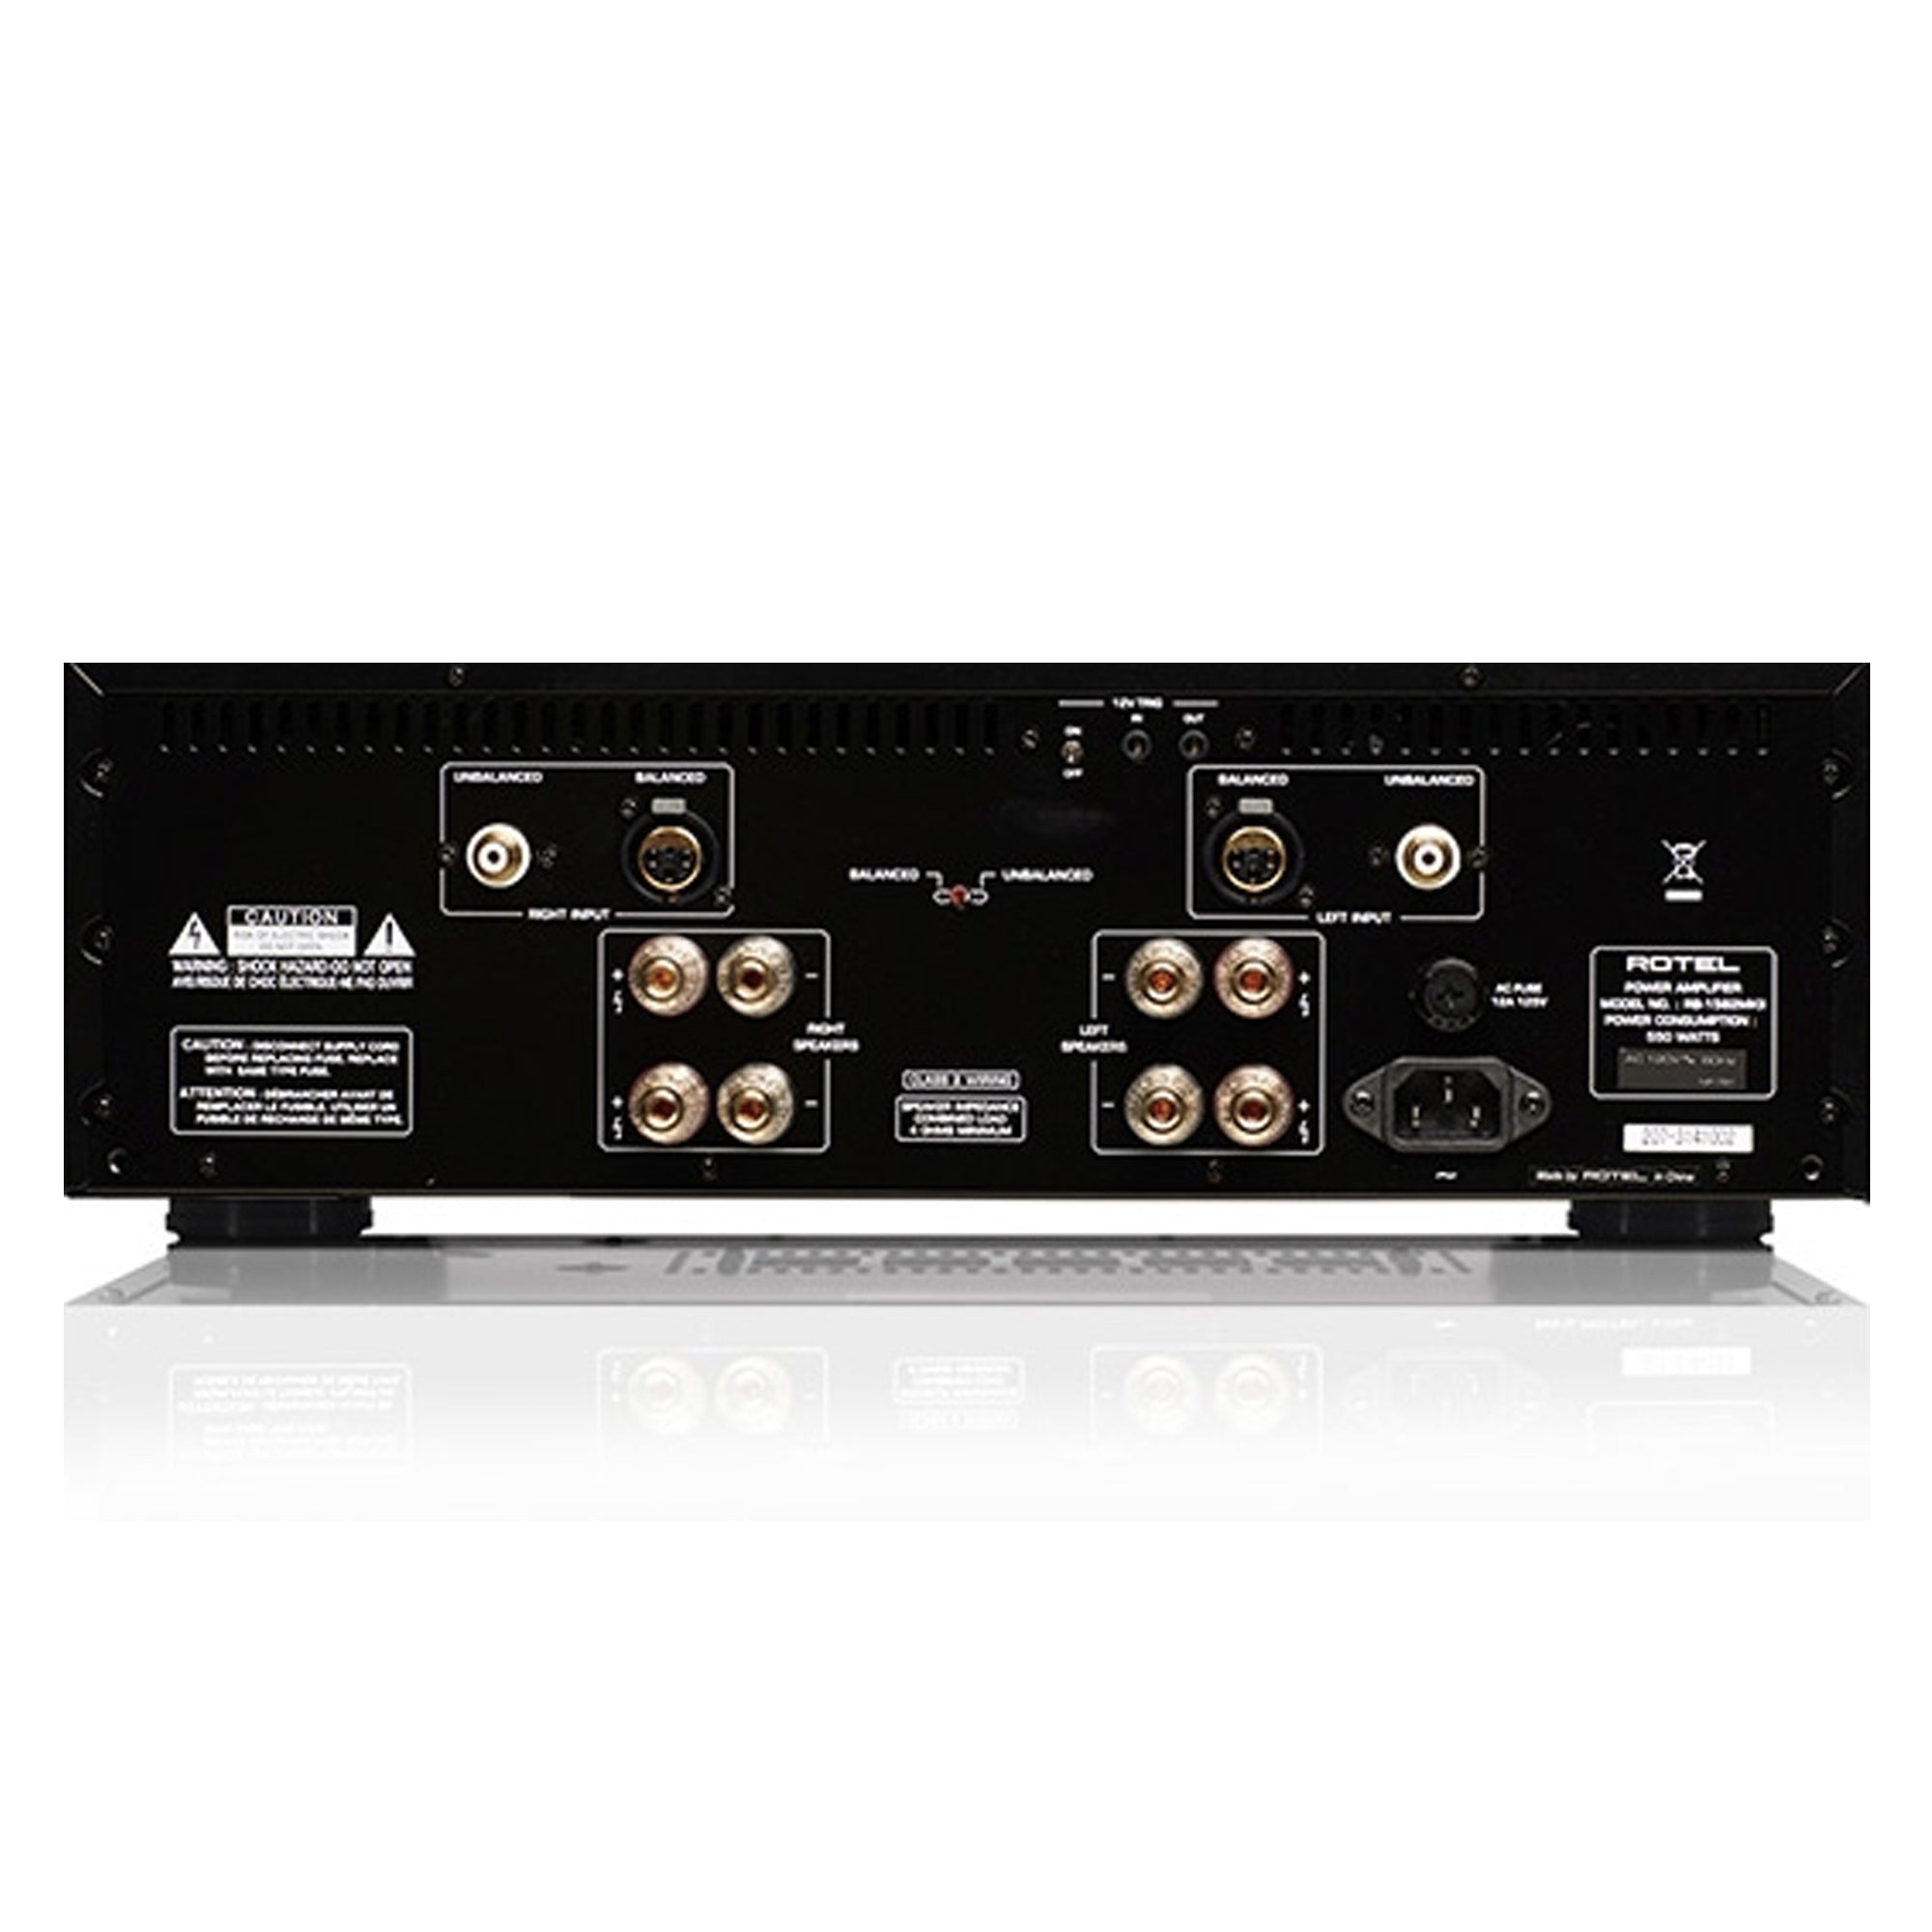 Rotel RB-1582 MKII 200W 2-Channel Power Amplifier